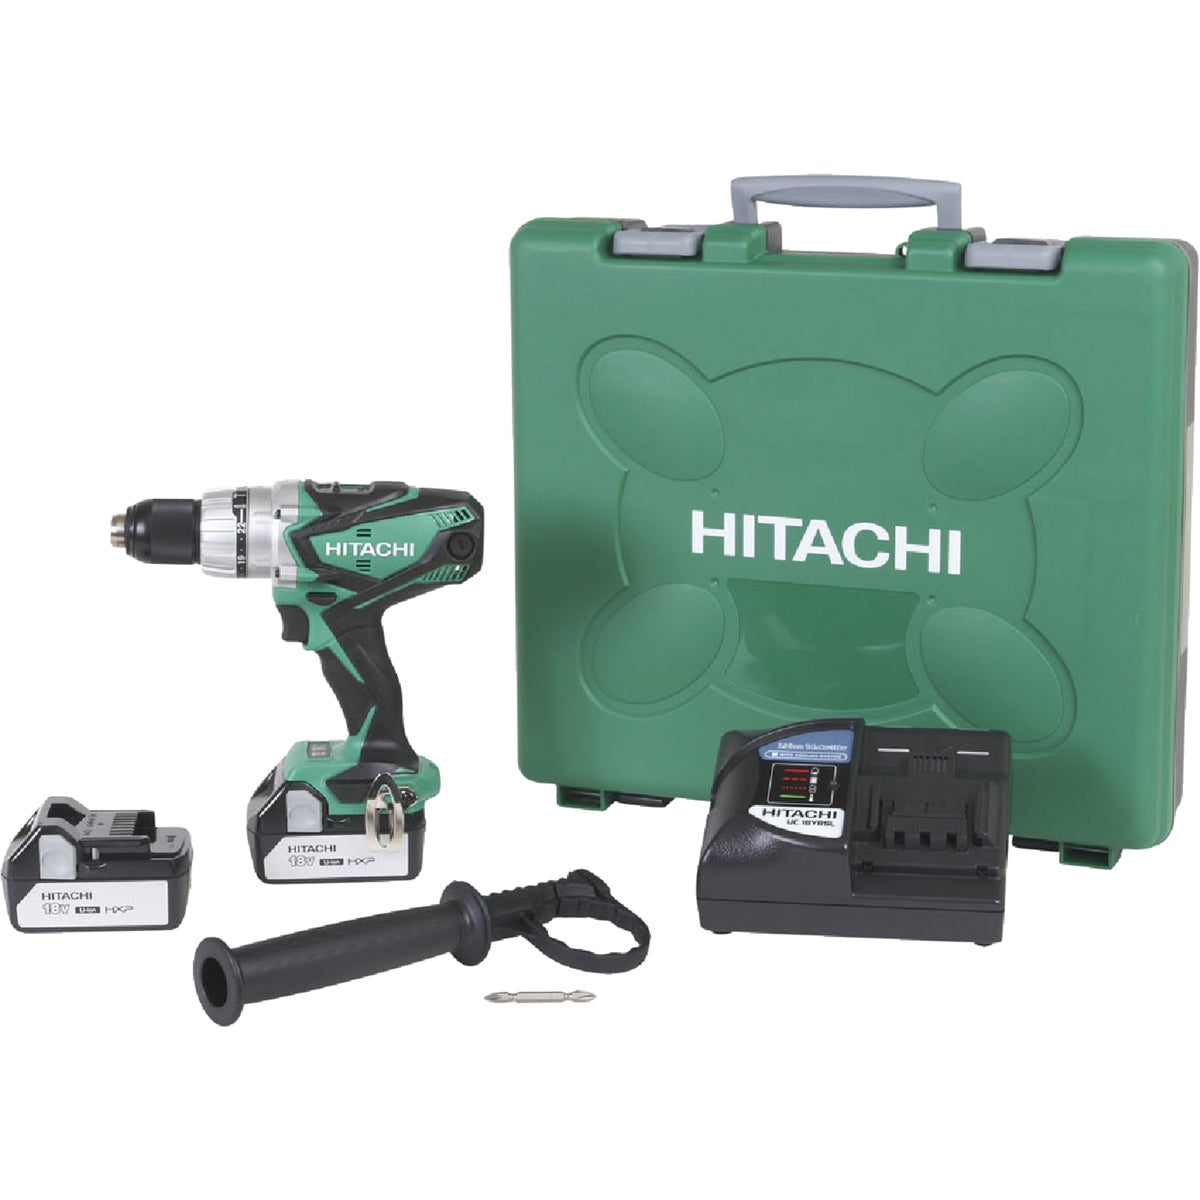 18V LI-ION HAMMERDRILL - DV18DSDL by Hitachi Power Tools